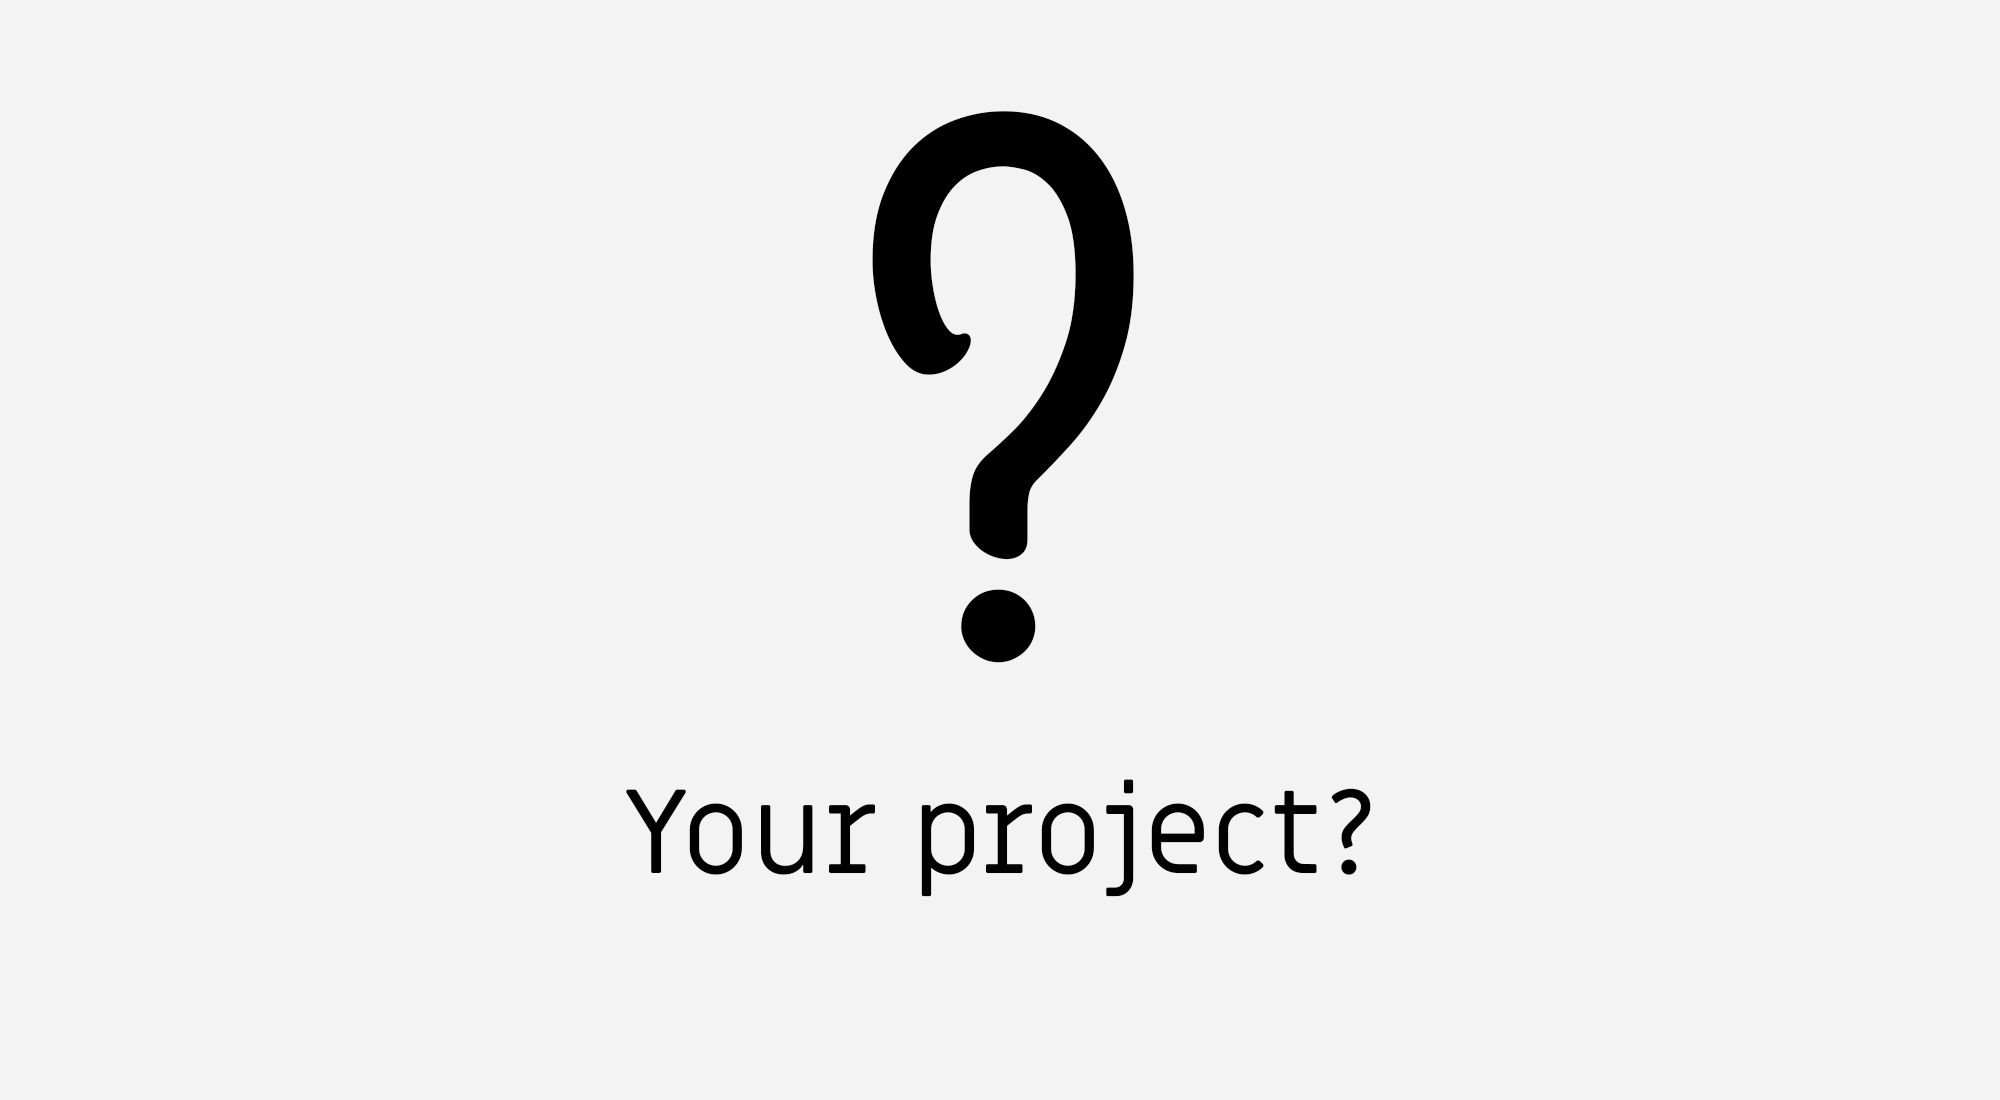 Your project